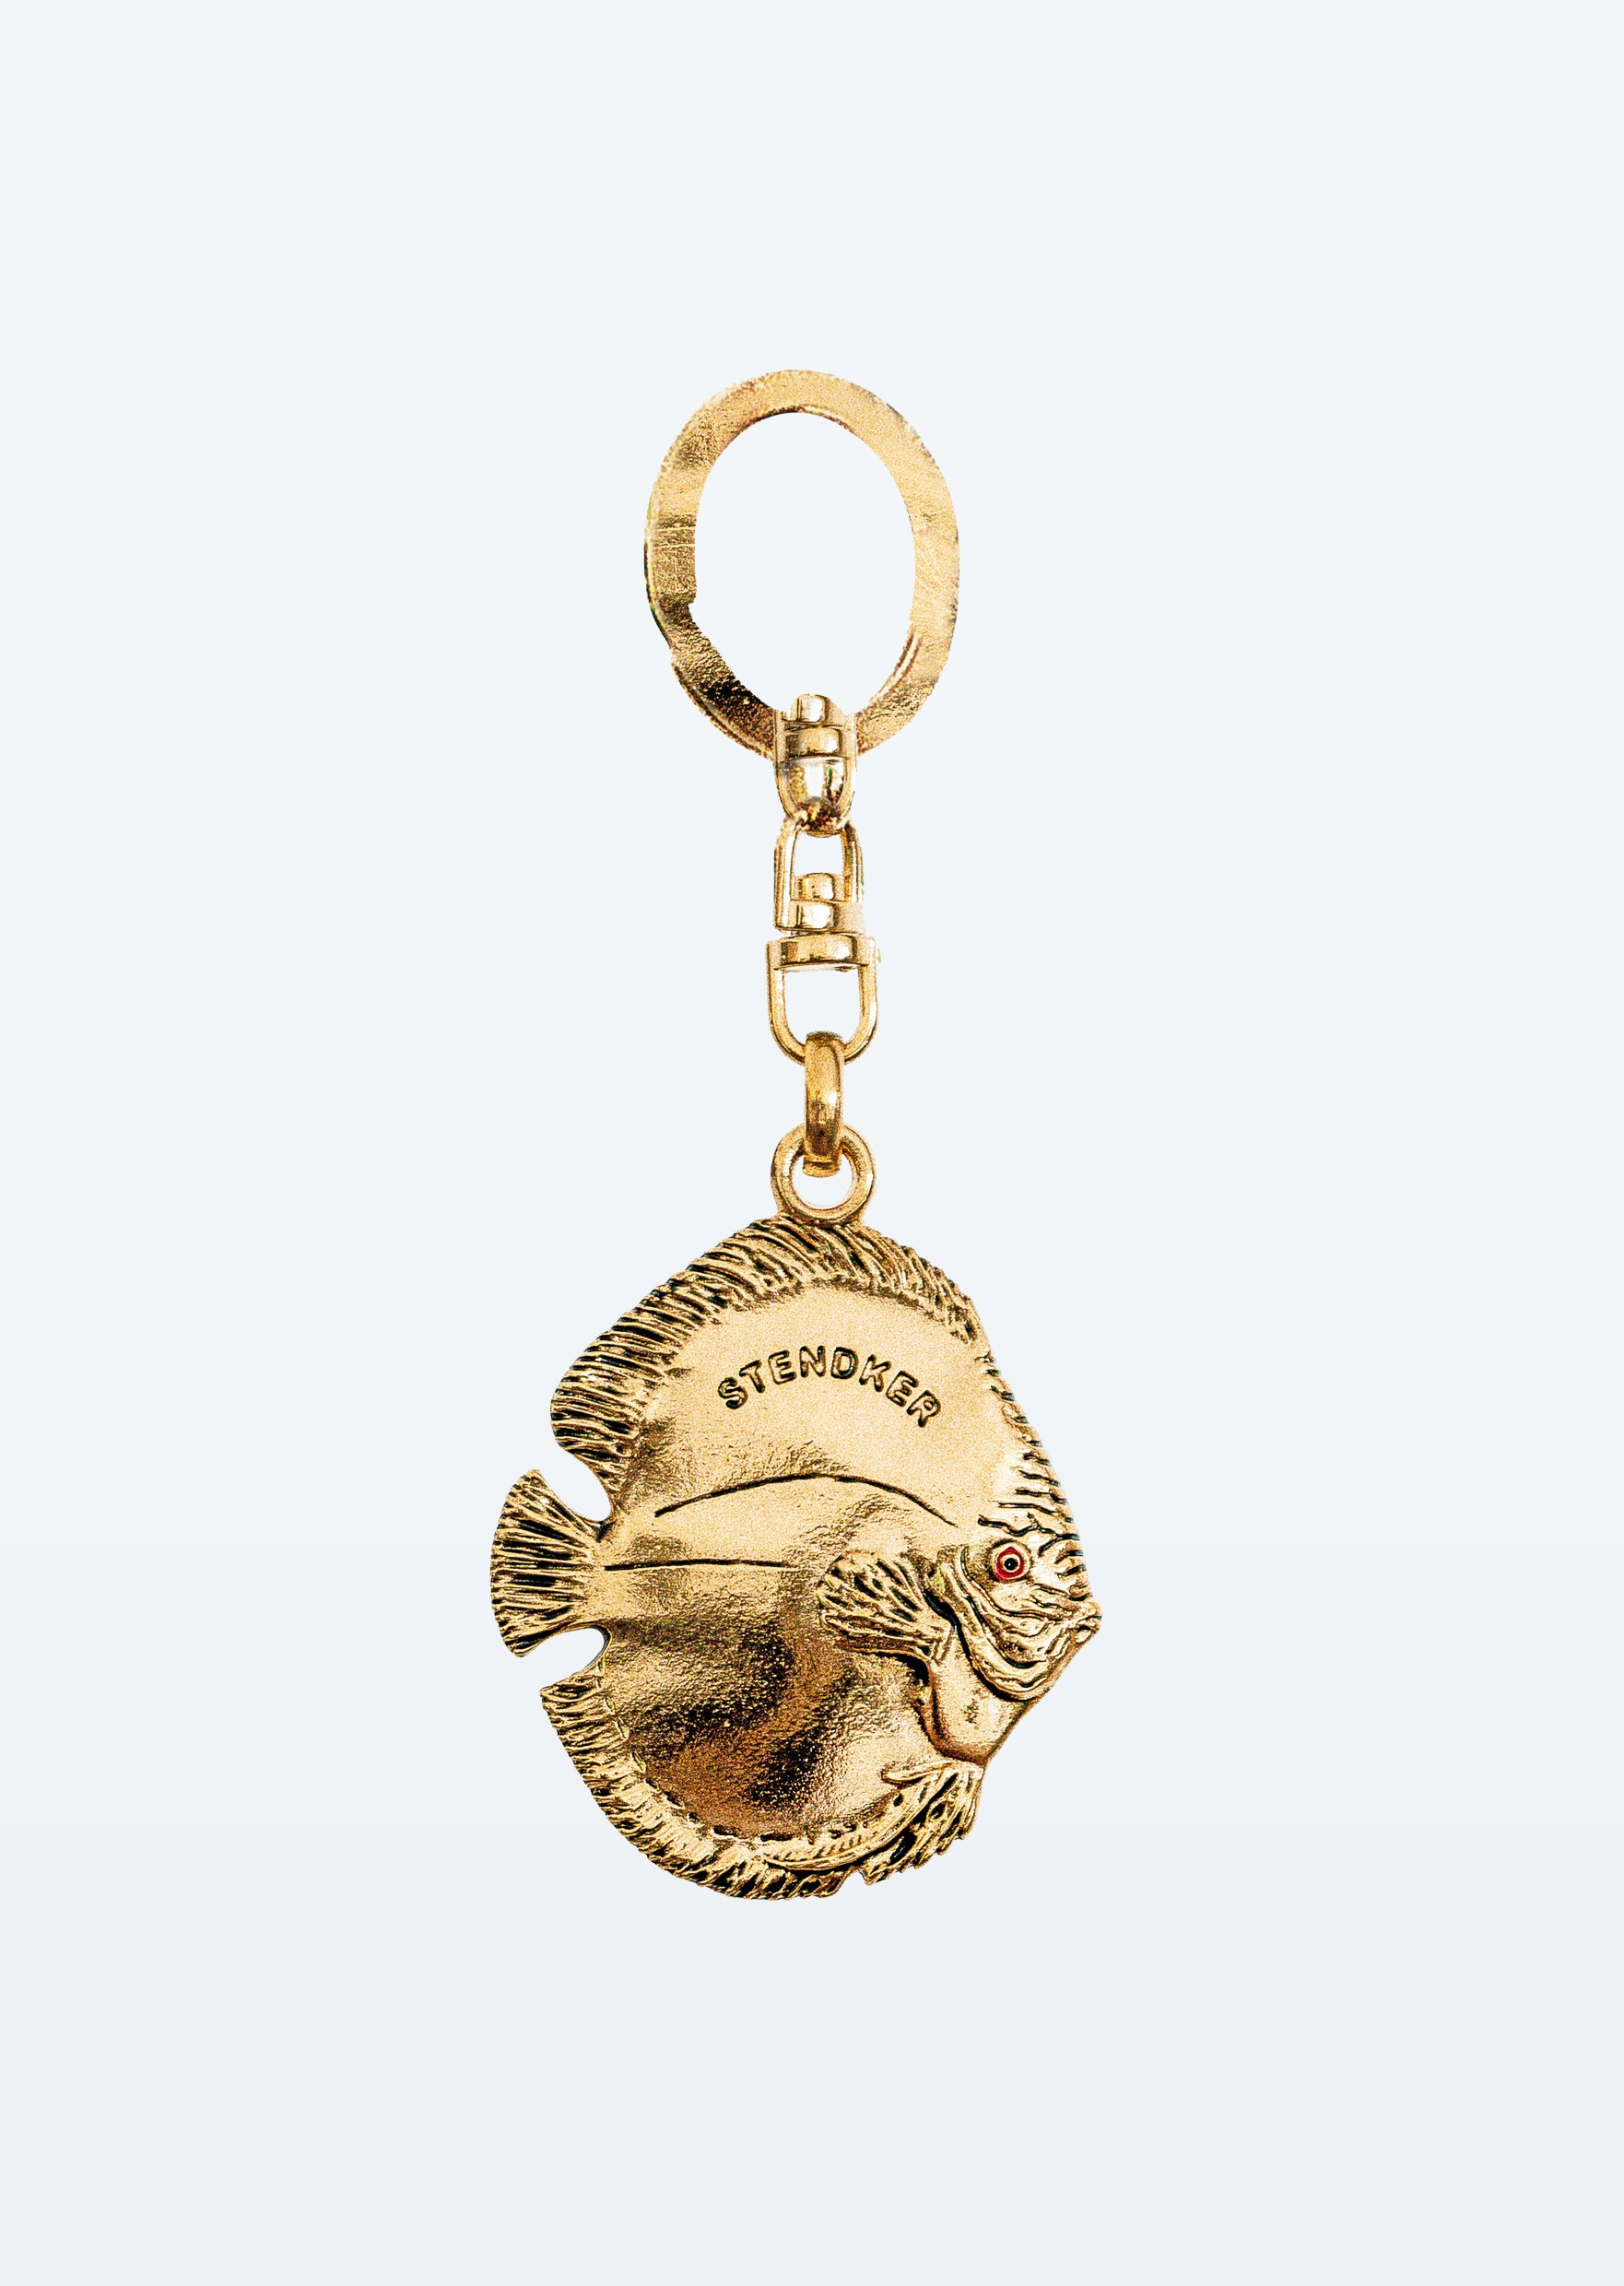 Stendker Keychain: Gold Chrome